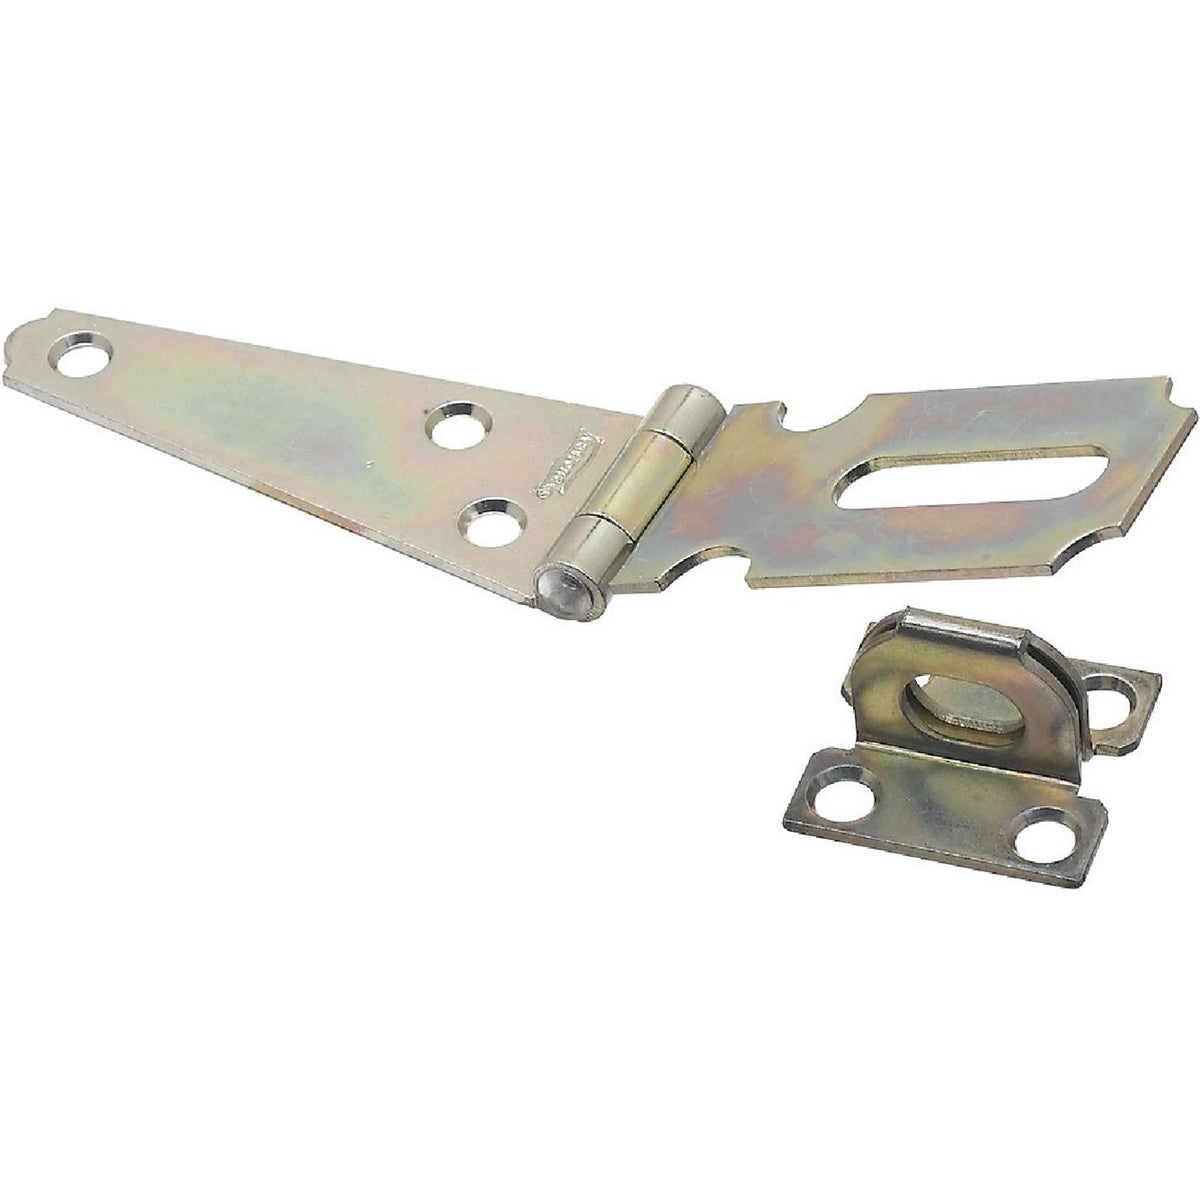 "3"" ZINC HINGE HASP - N129577 by National Mfg Co"